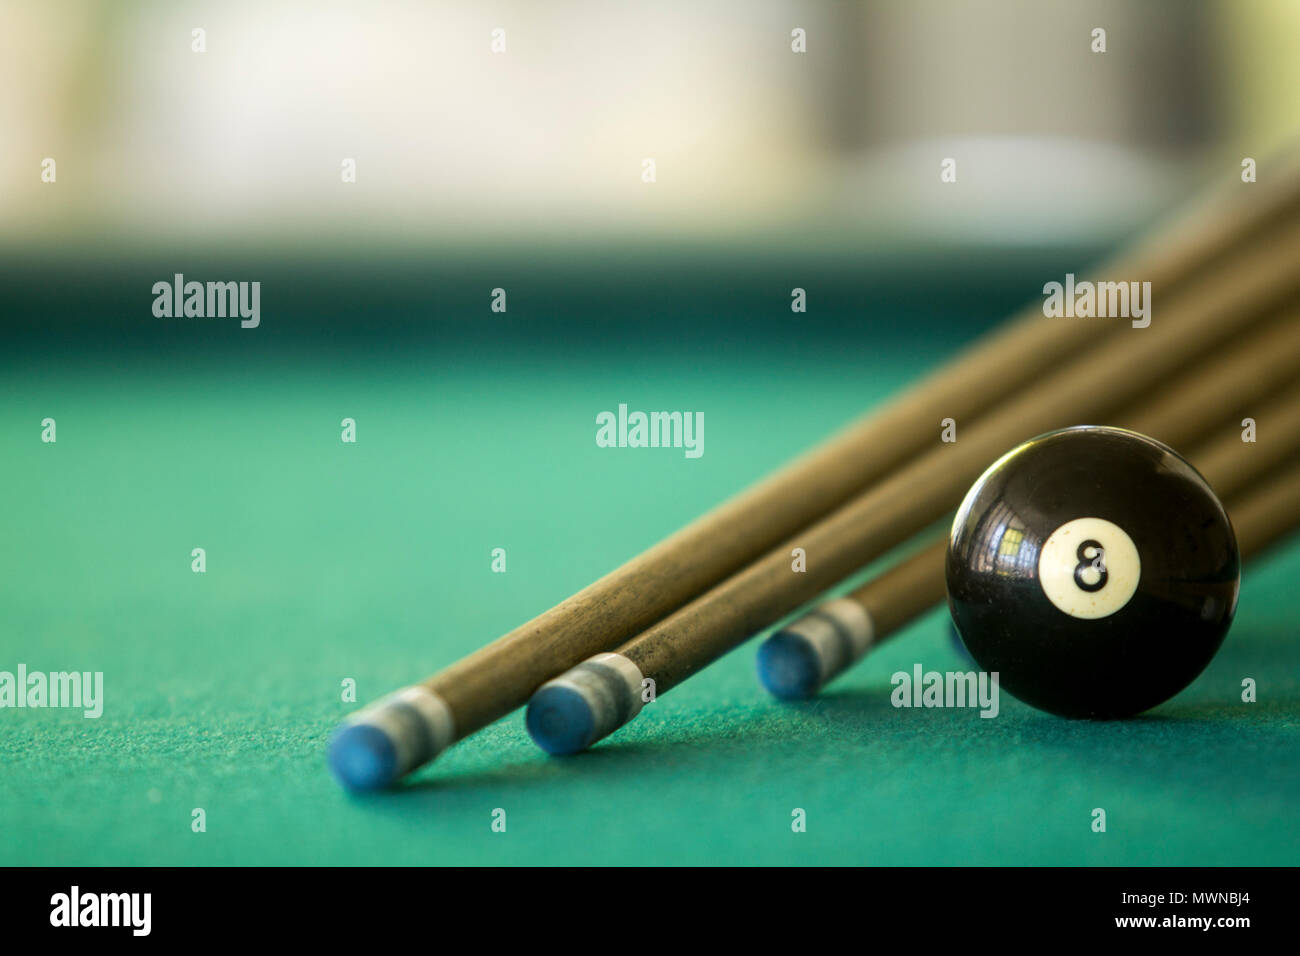 Close Up of a eight black billiard ball on a green table - Stock Image